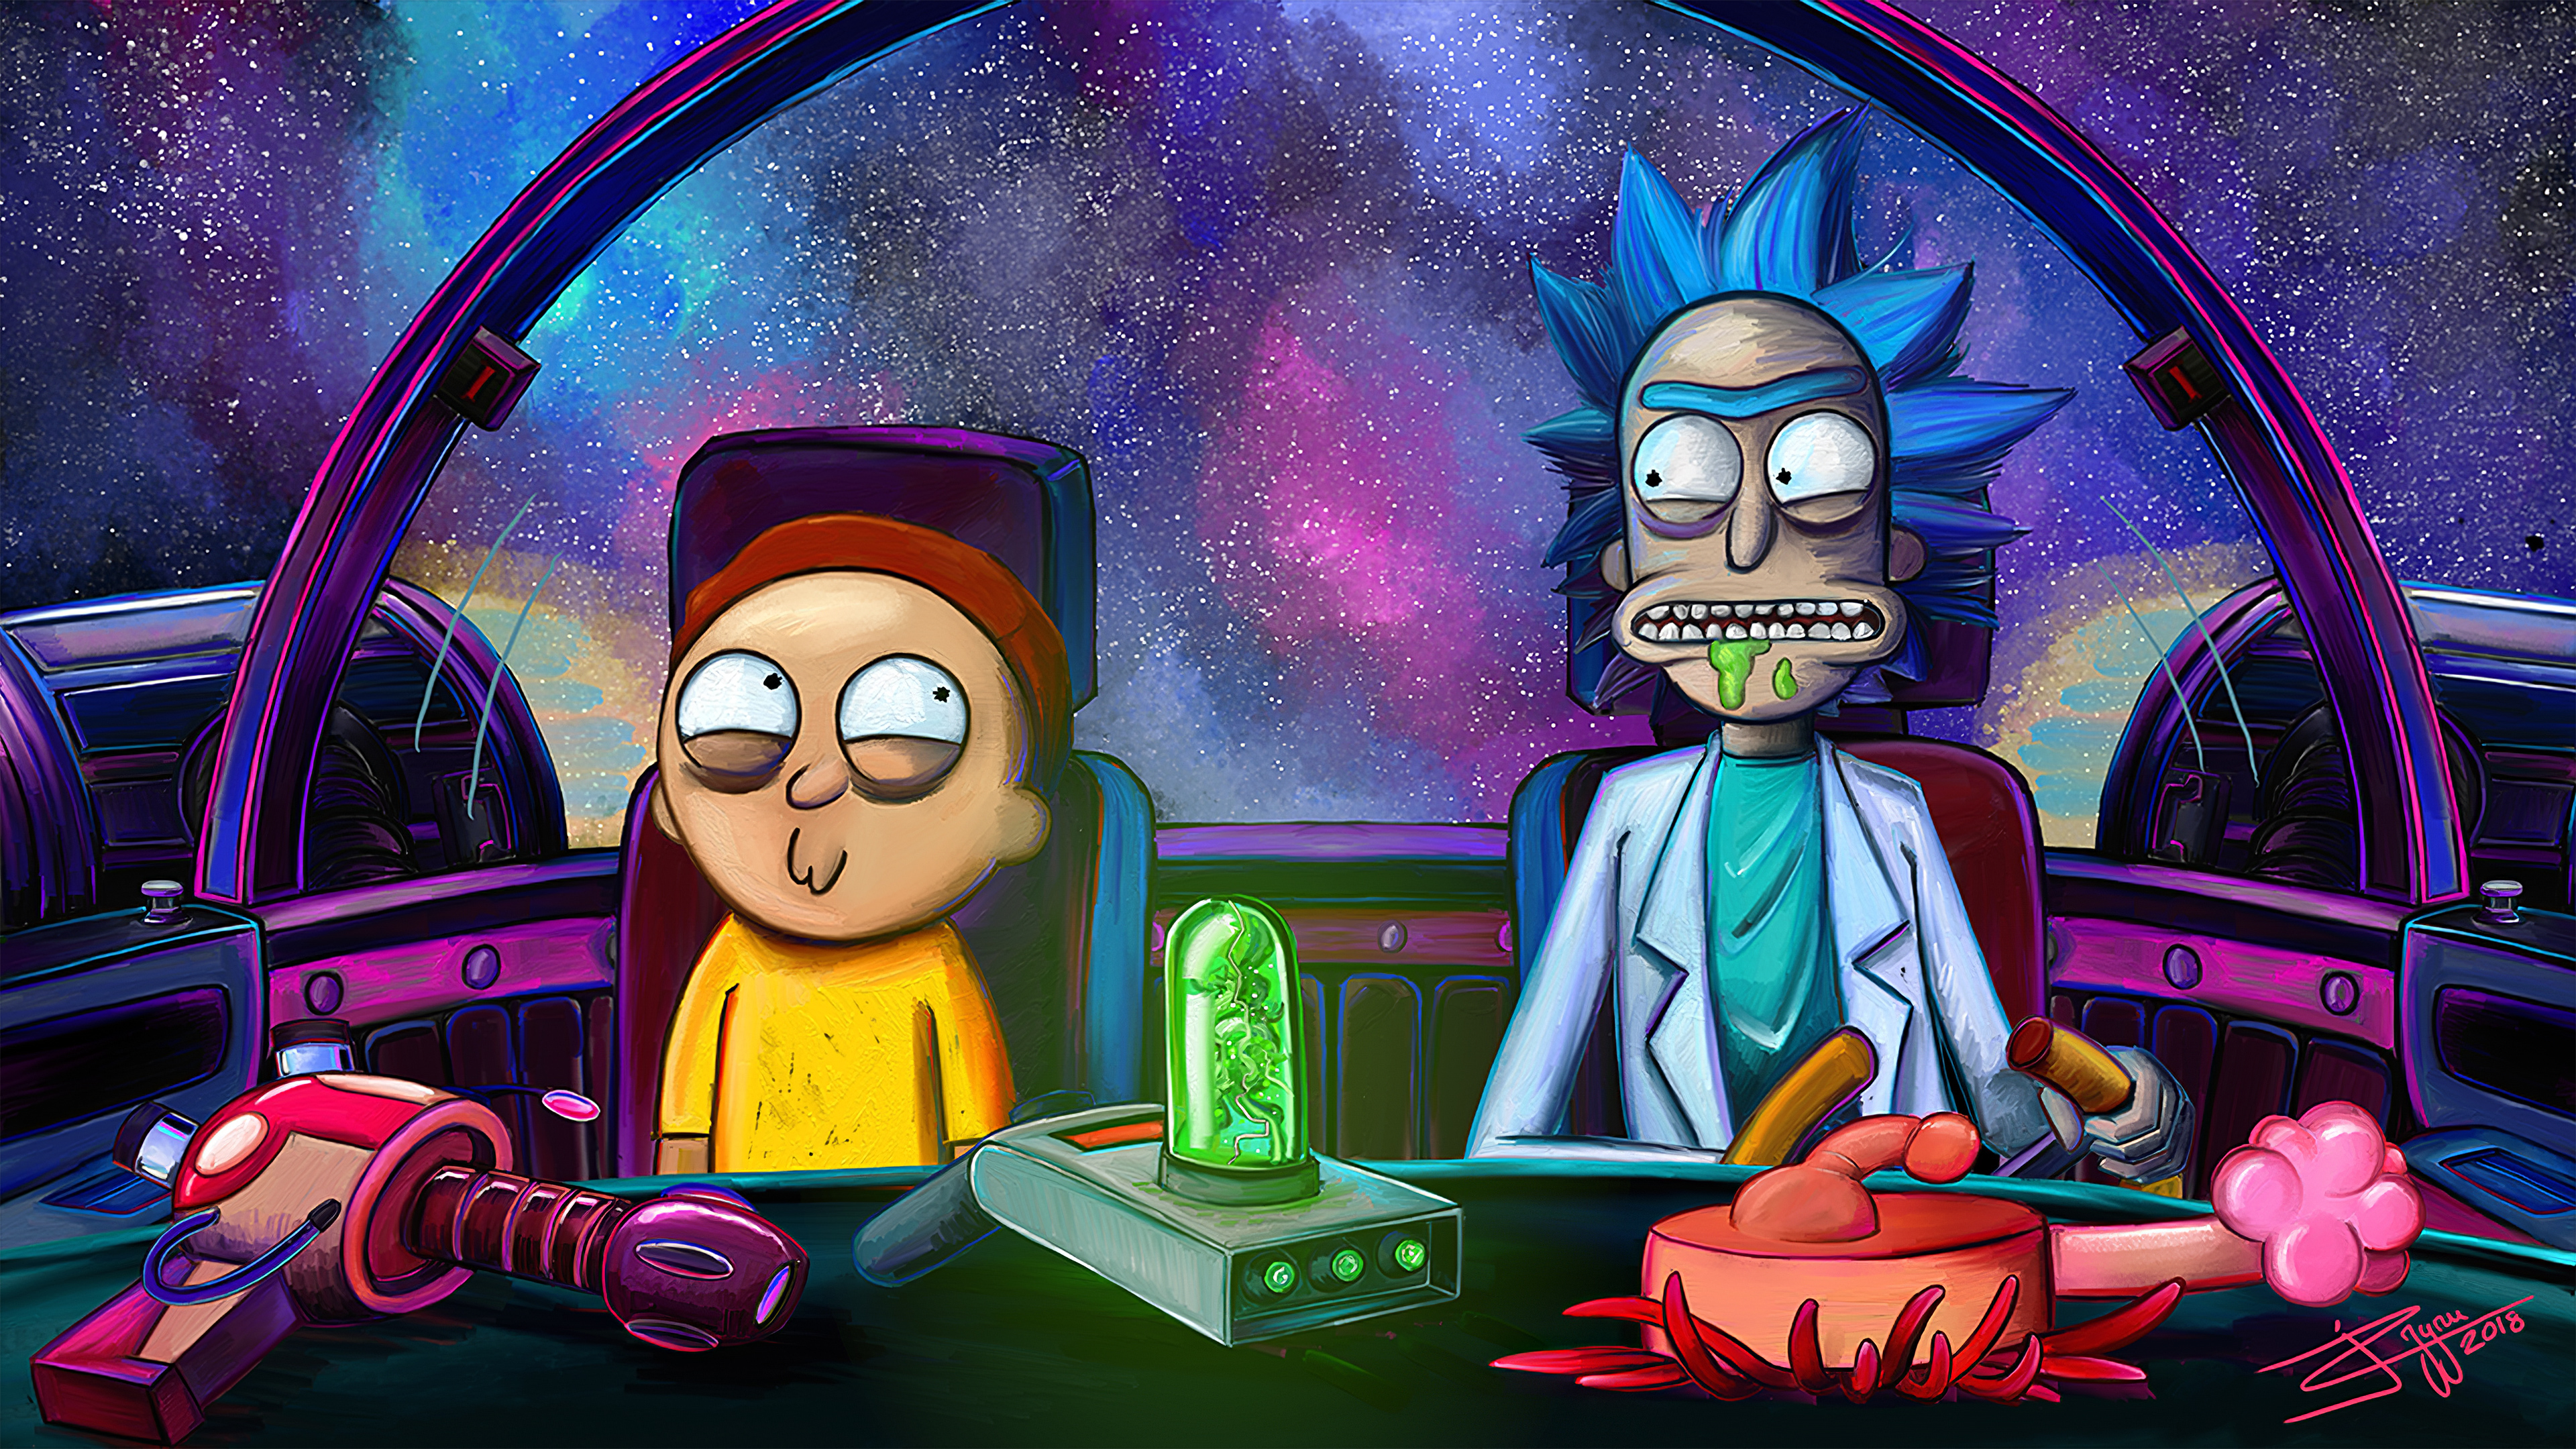 3840x2160 Rick And Morty Netflix 2020 4k HD 4k Wallpapers ...